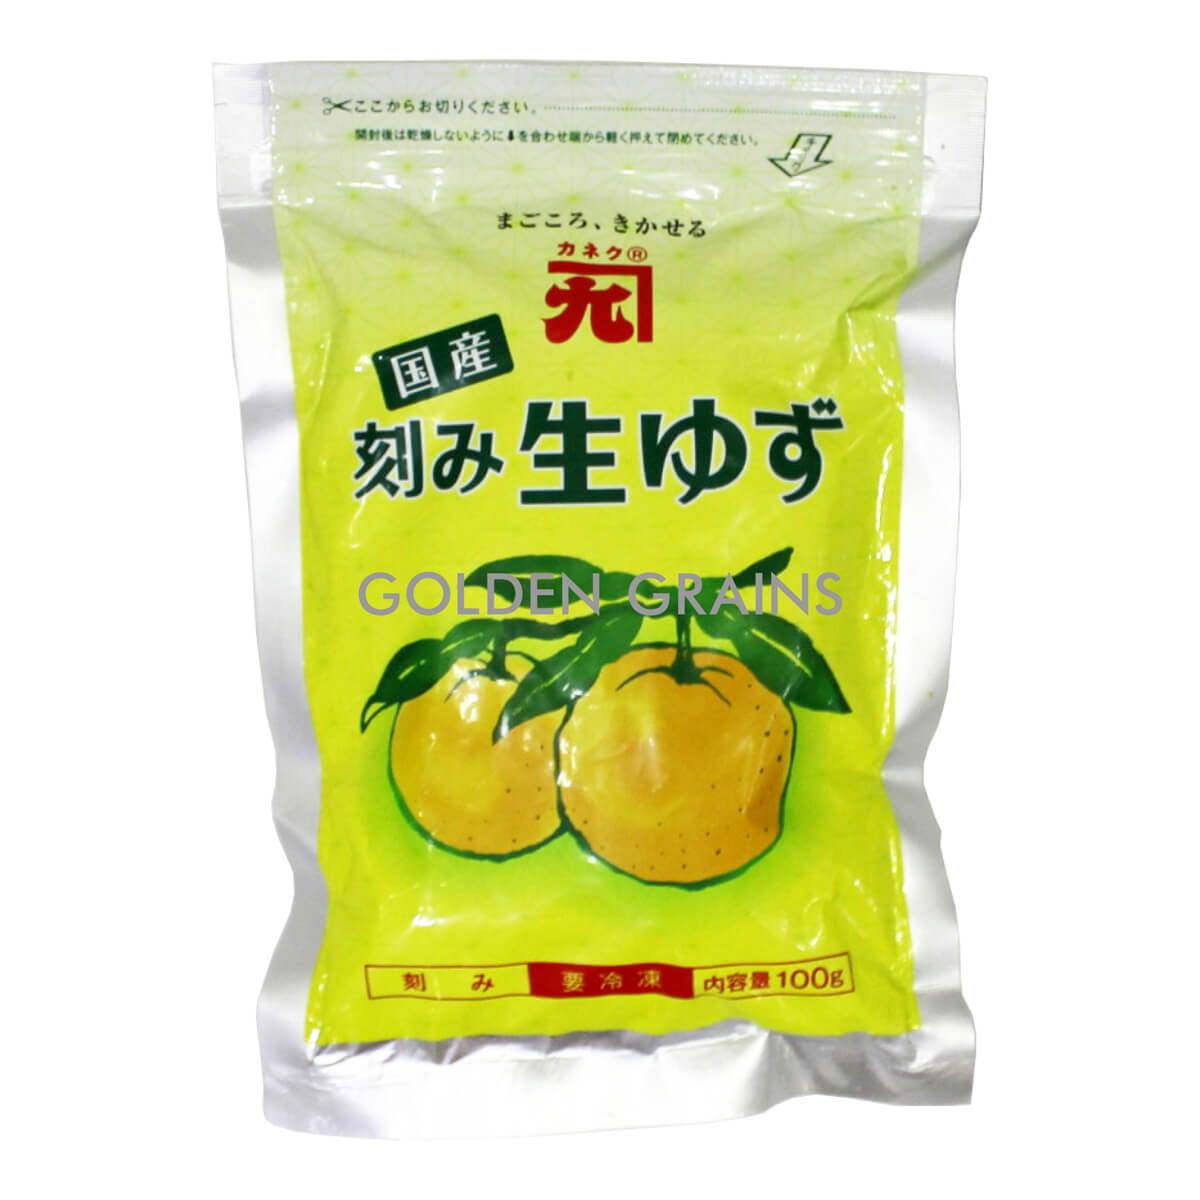 Golden Grains Kaneku - Yuzu Peel - Front.jpg